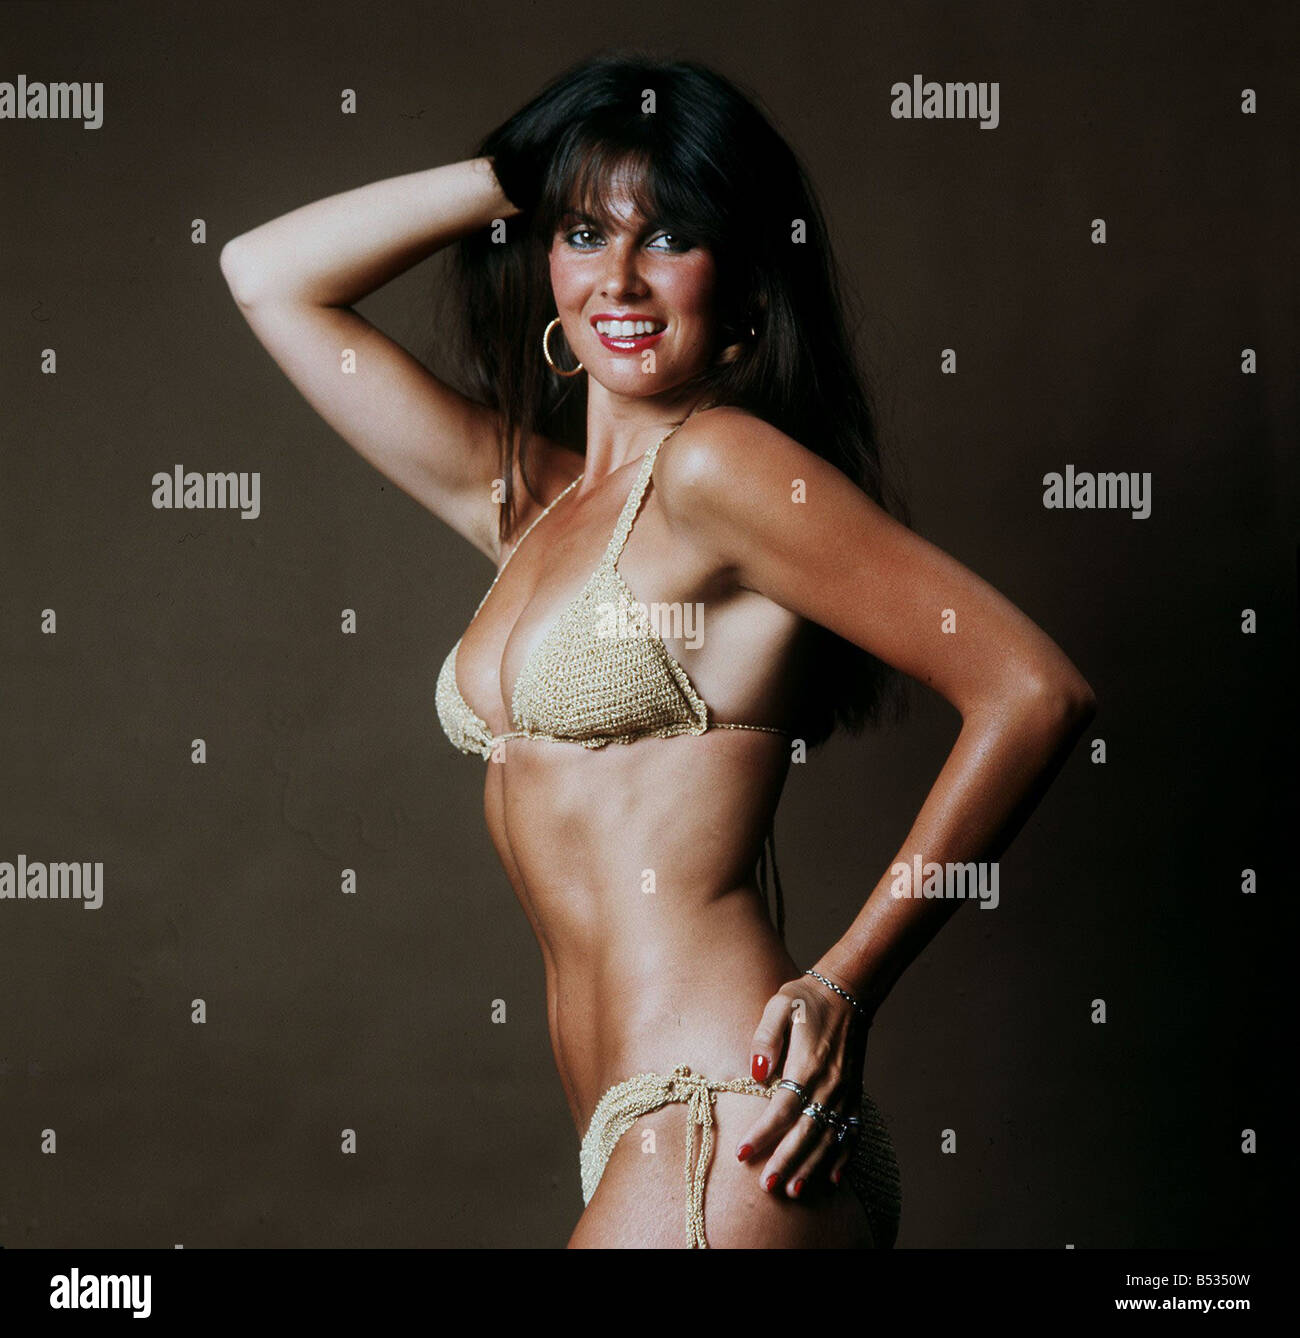 Actress Caroline Munro wearing gold bikini 1983 Played a James Bond girl in the film The Spy Who Loved Me - Stock Image